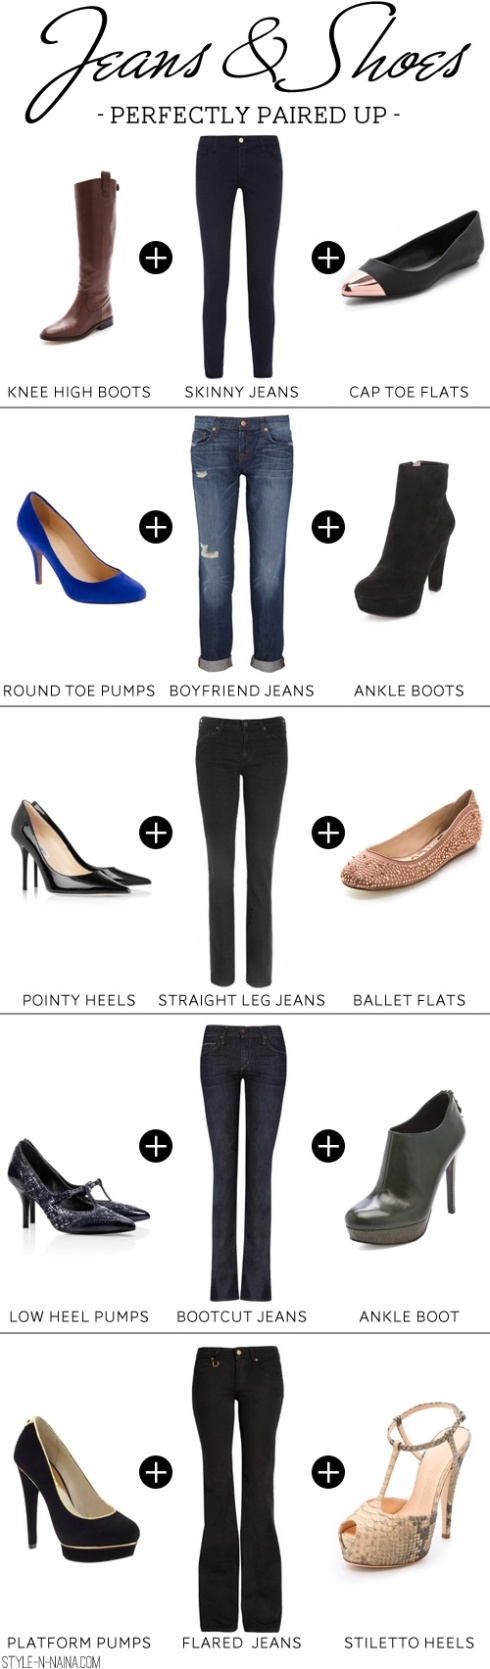 Jeans and Shoes Paired